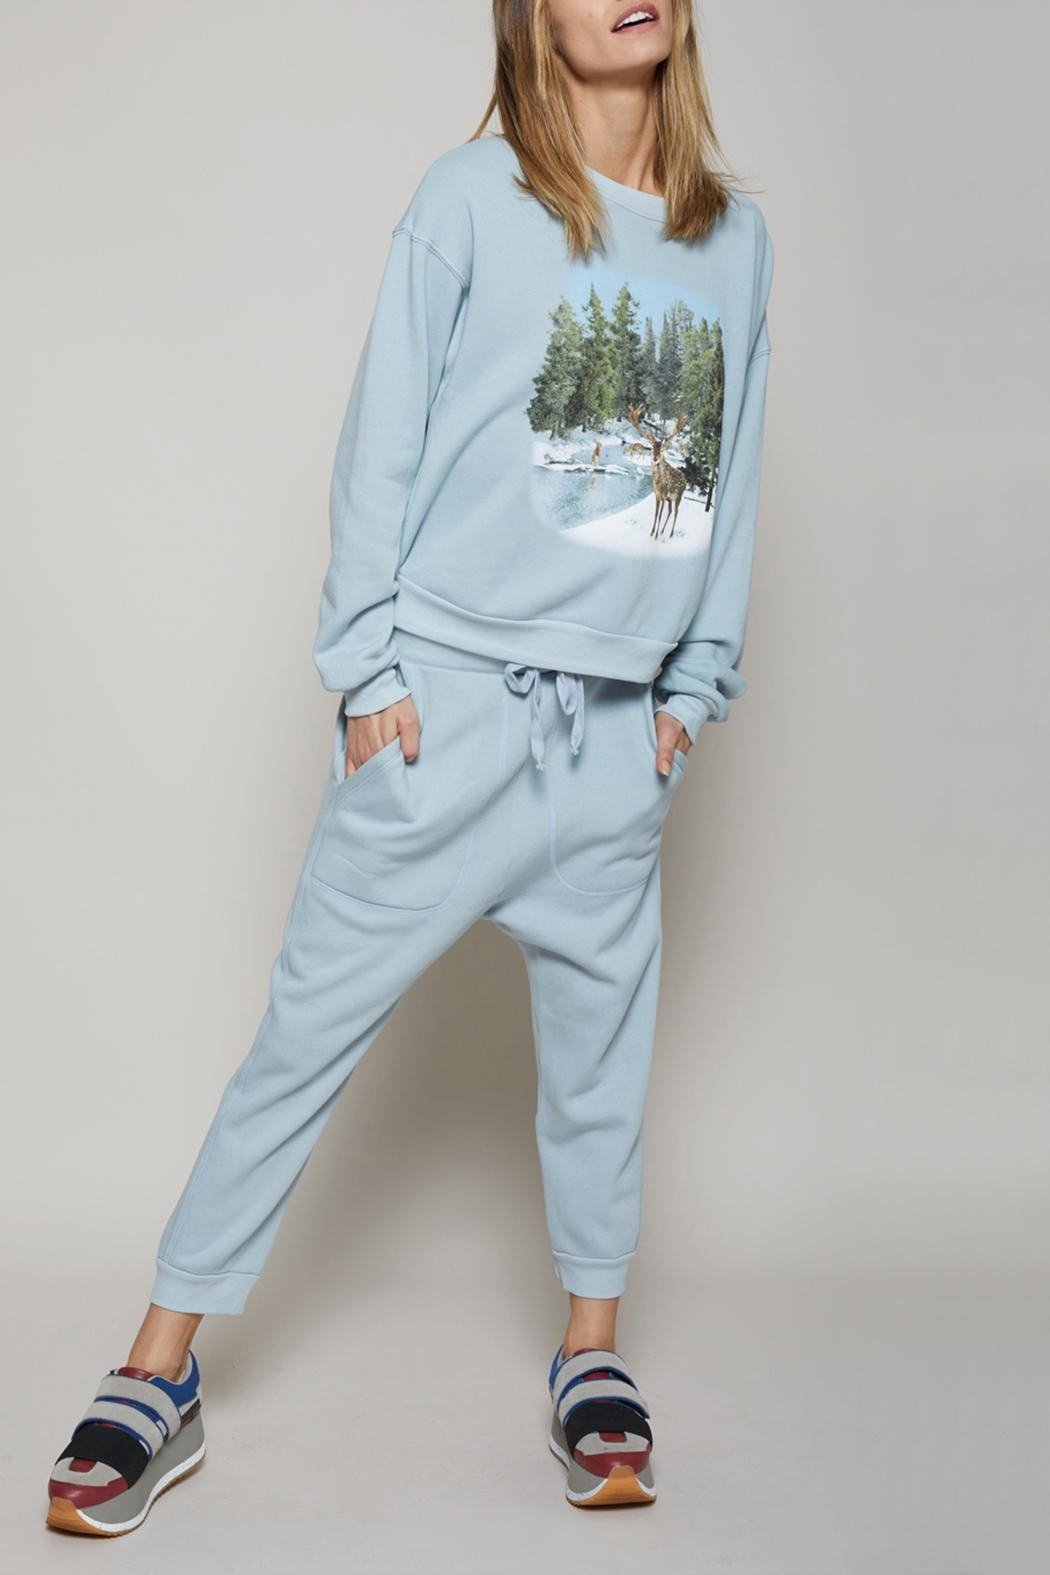 All Things Fabulous Deer Valley Sweatshirt - Main Image